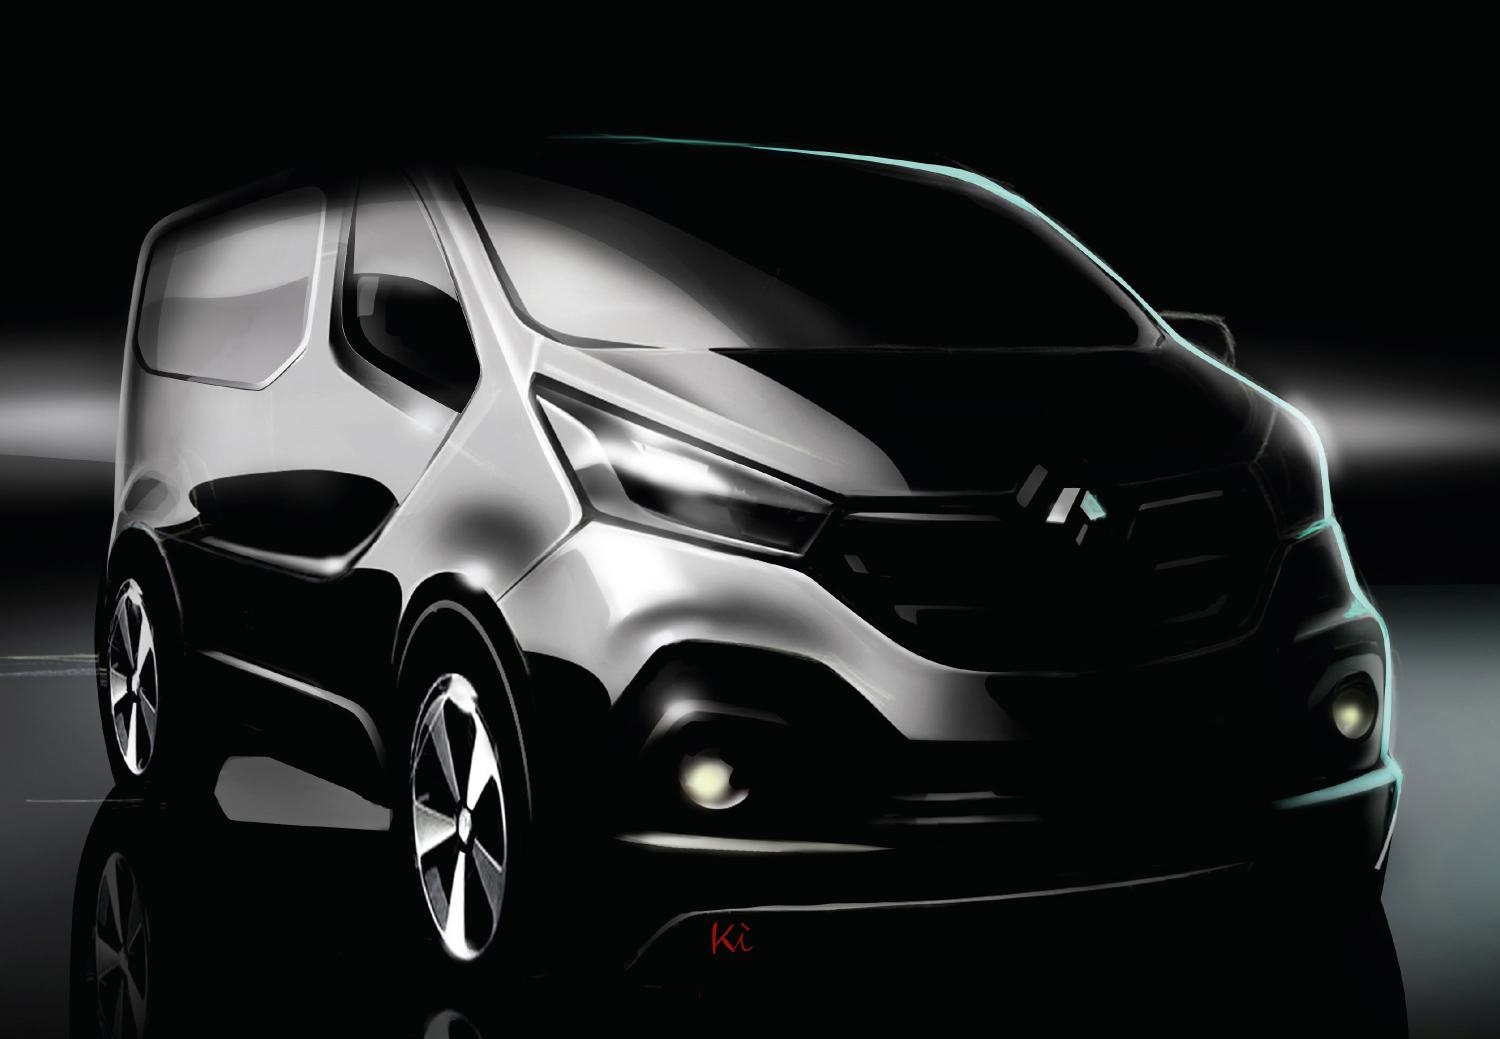 Renault Releases Sketch Of New Trafic Van For 2017